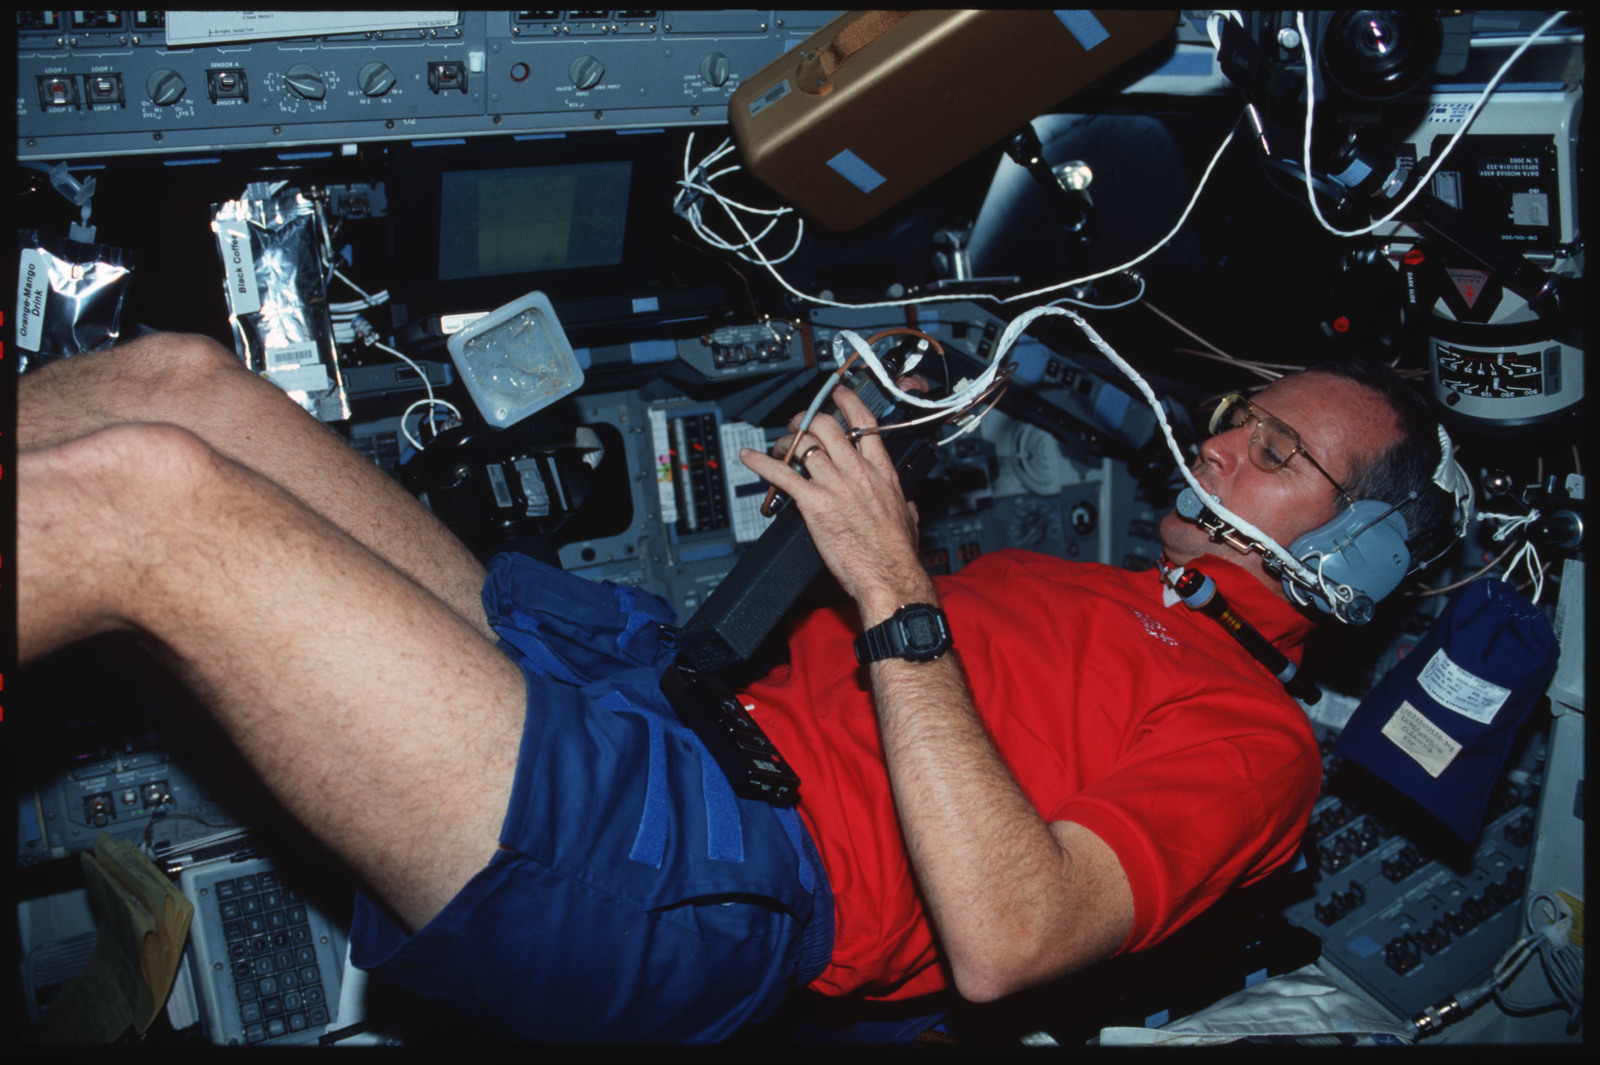 S45-04-025 - STS-045 - Pilot Brian Duffy uses the SAREX equipment